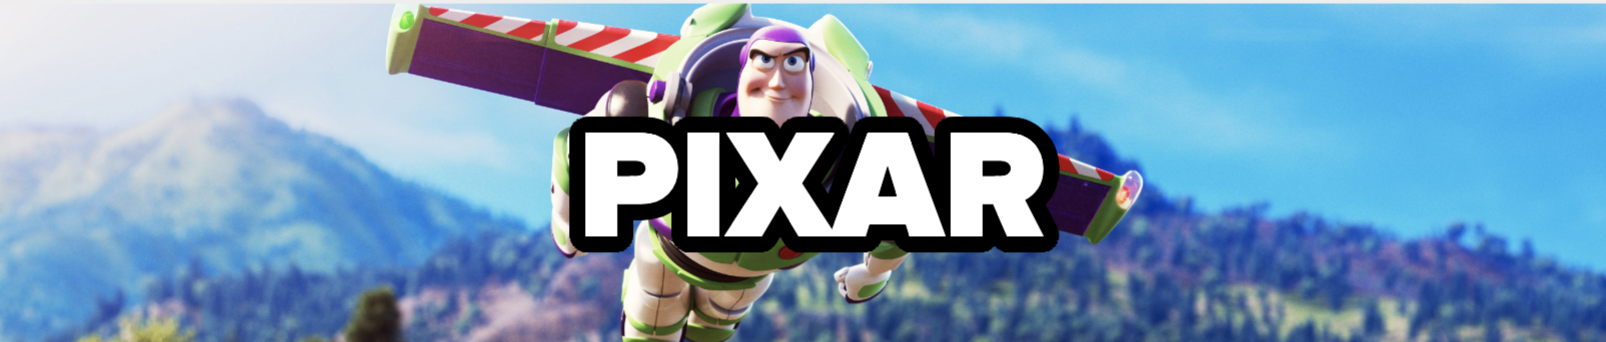 PIXAR, with Buzz Lightyear in the background